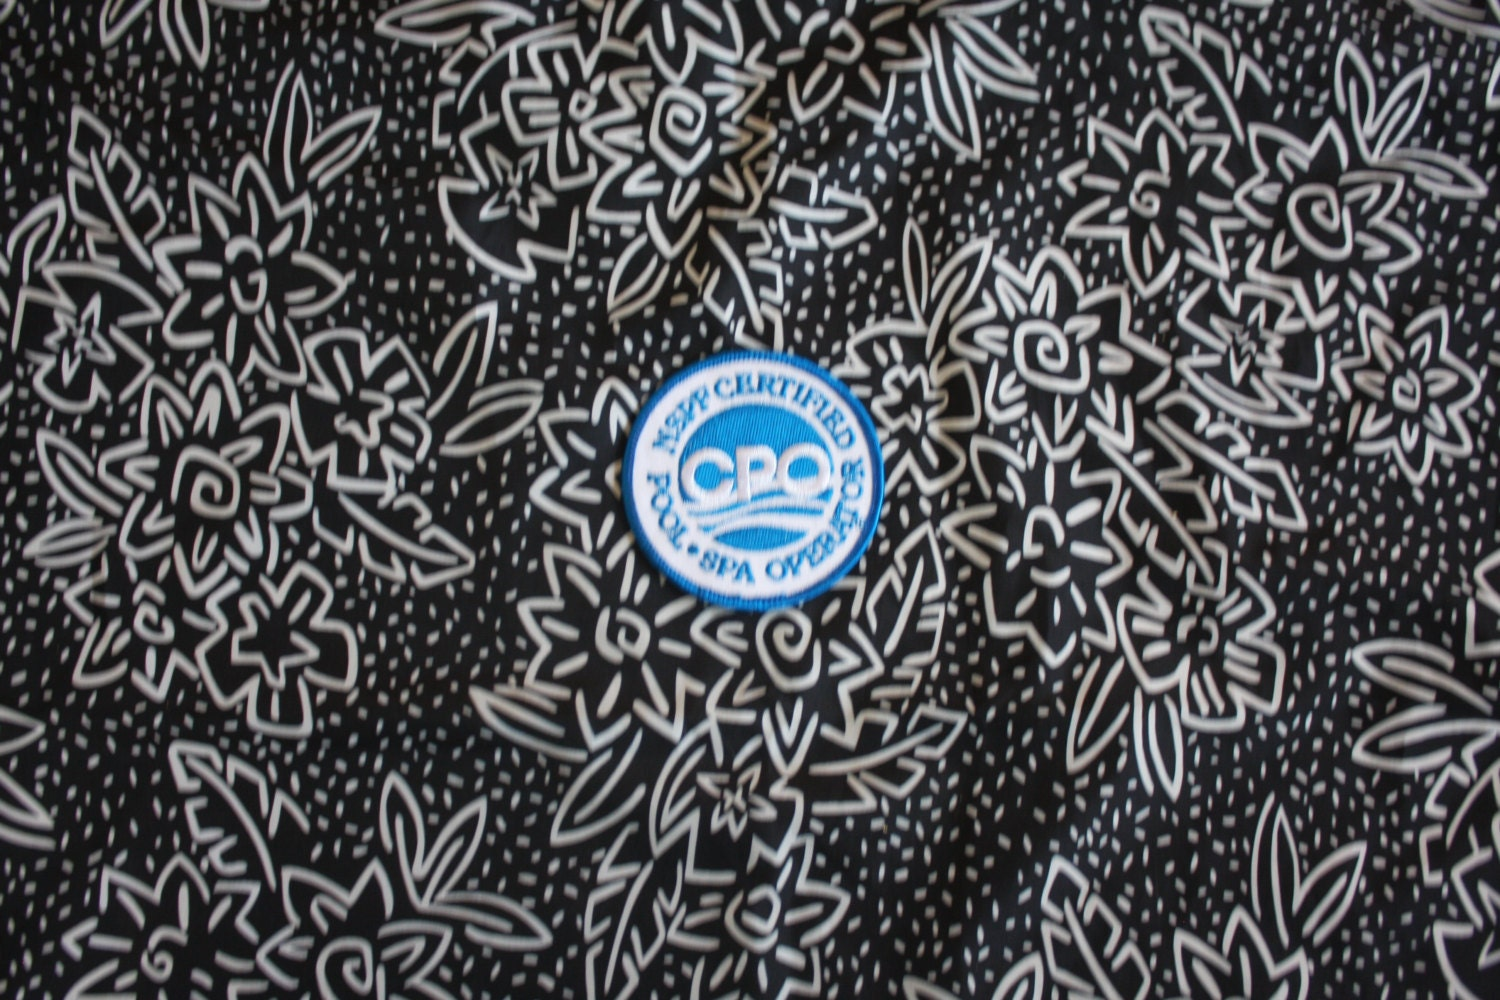 Vintage Pool Boy Embroidered Patch 80s Rare Nspf Pool Spa Operator Patch Blue And White Jean